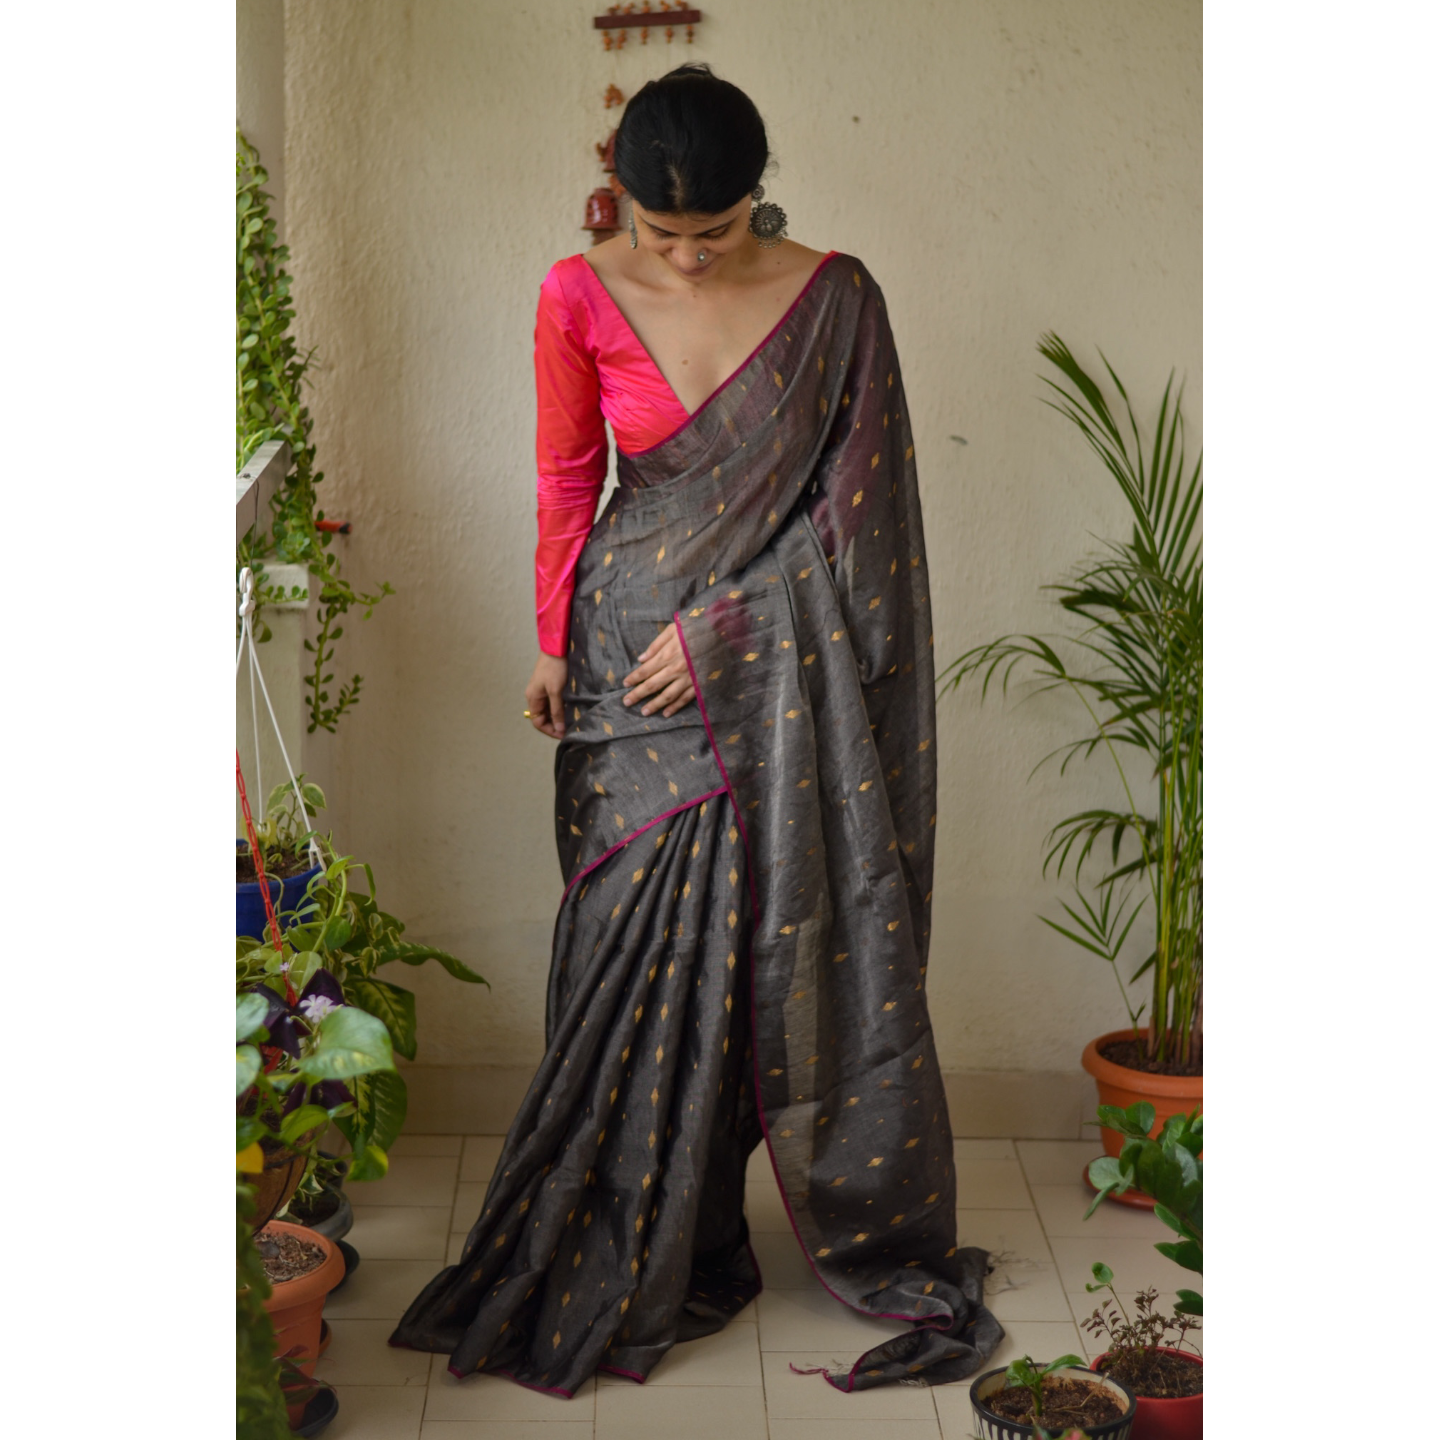 Handloom metallic linen saree with gold jari motif.